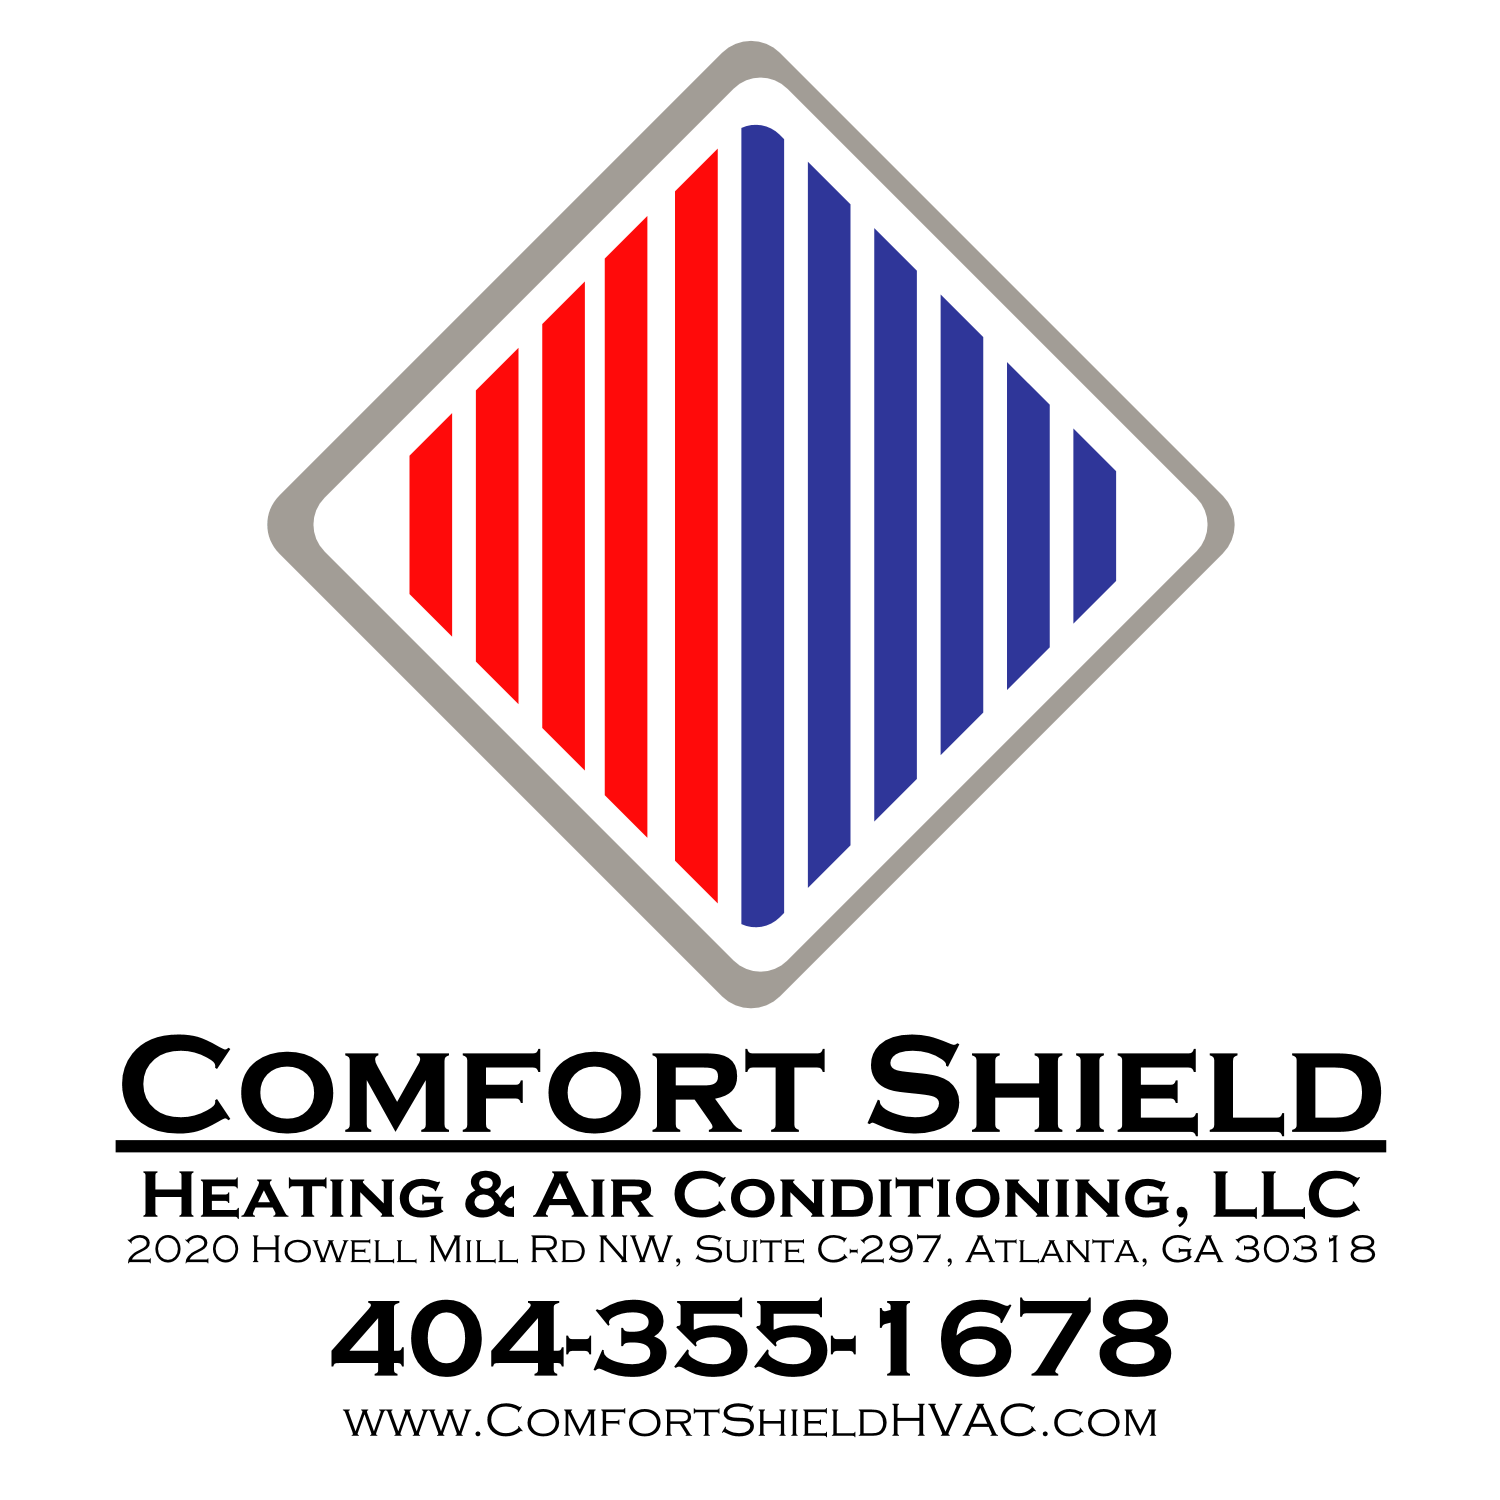 Comfort Shield Heating and Air Conditioning, LLC